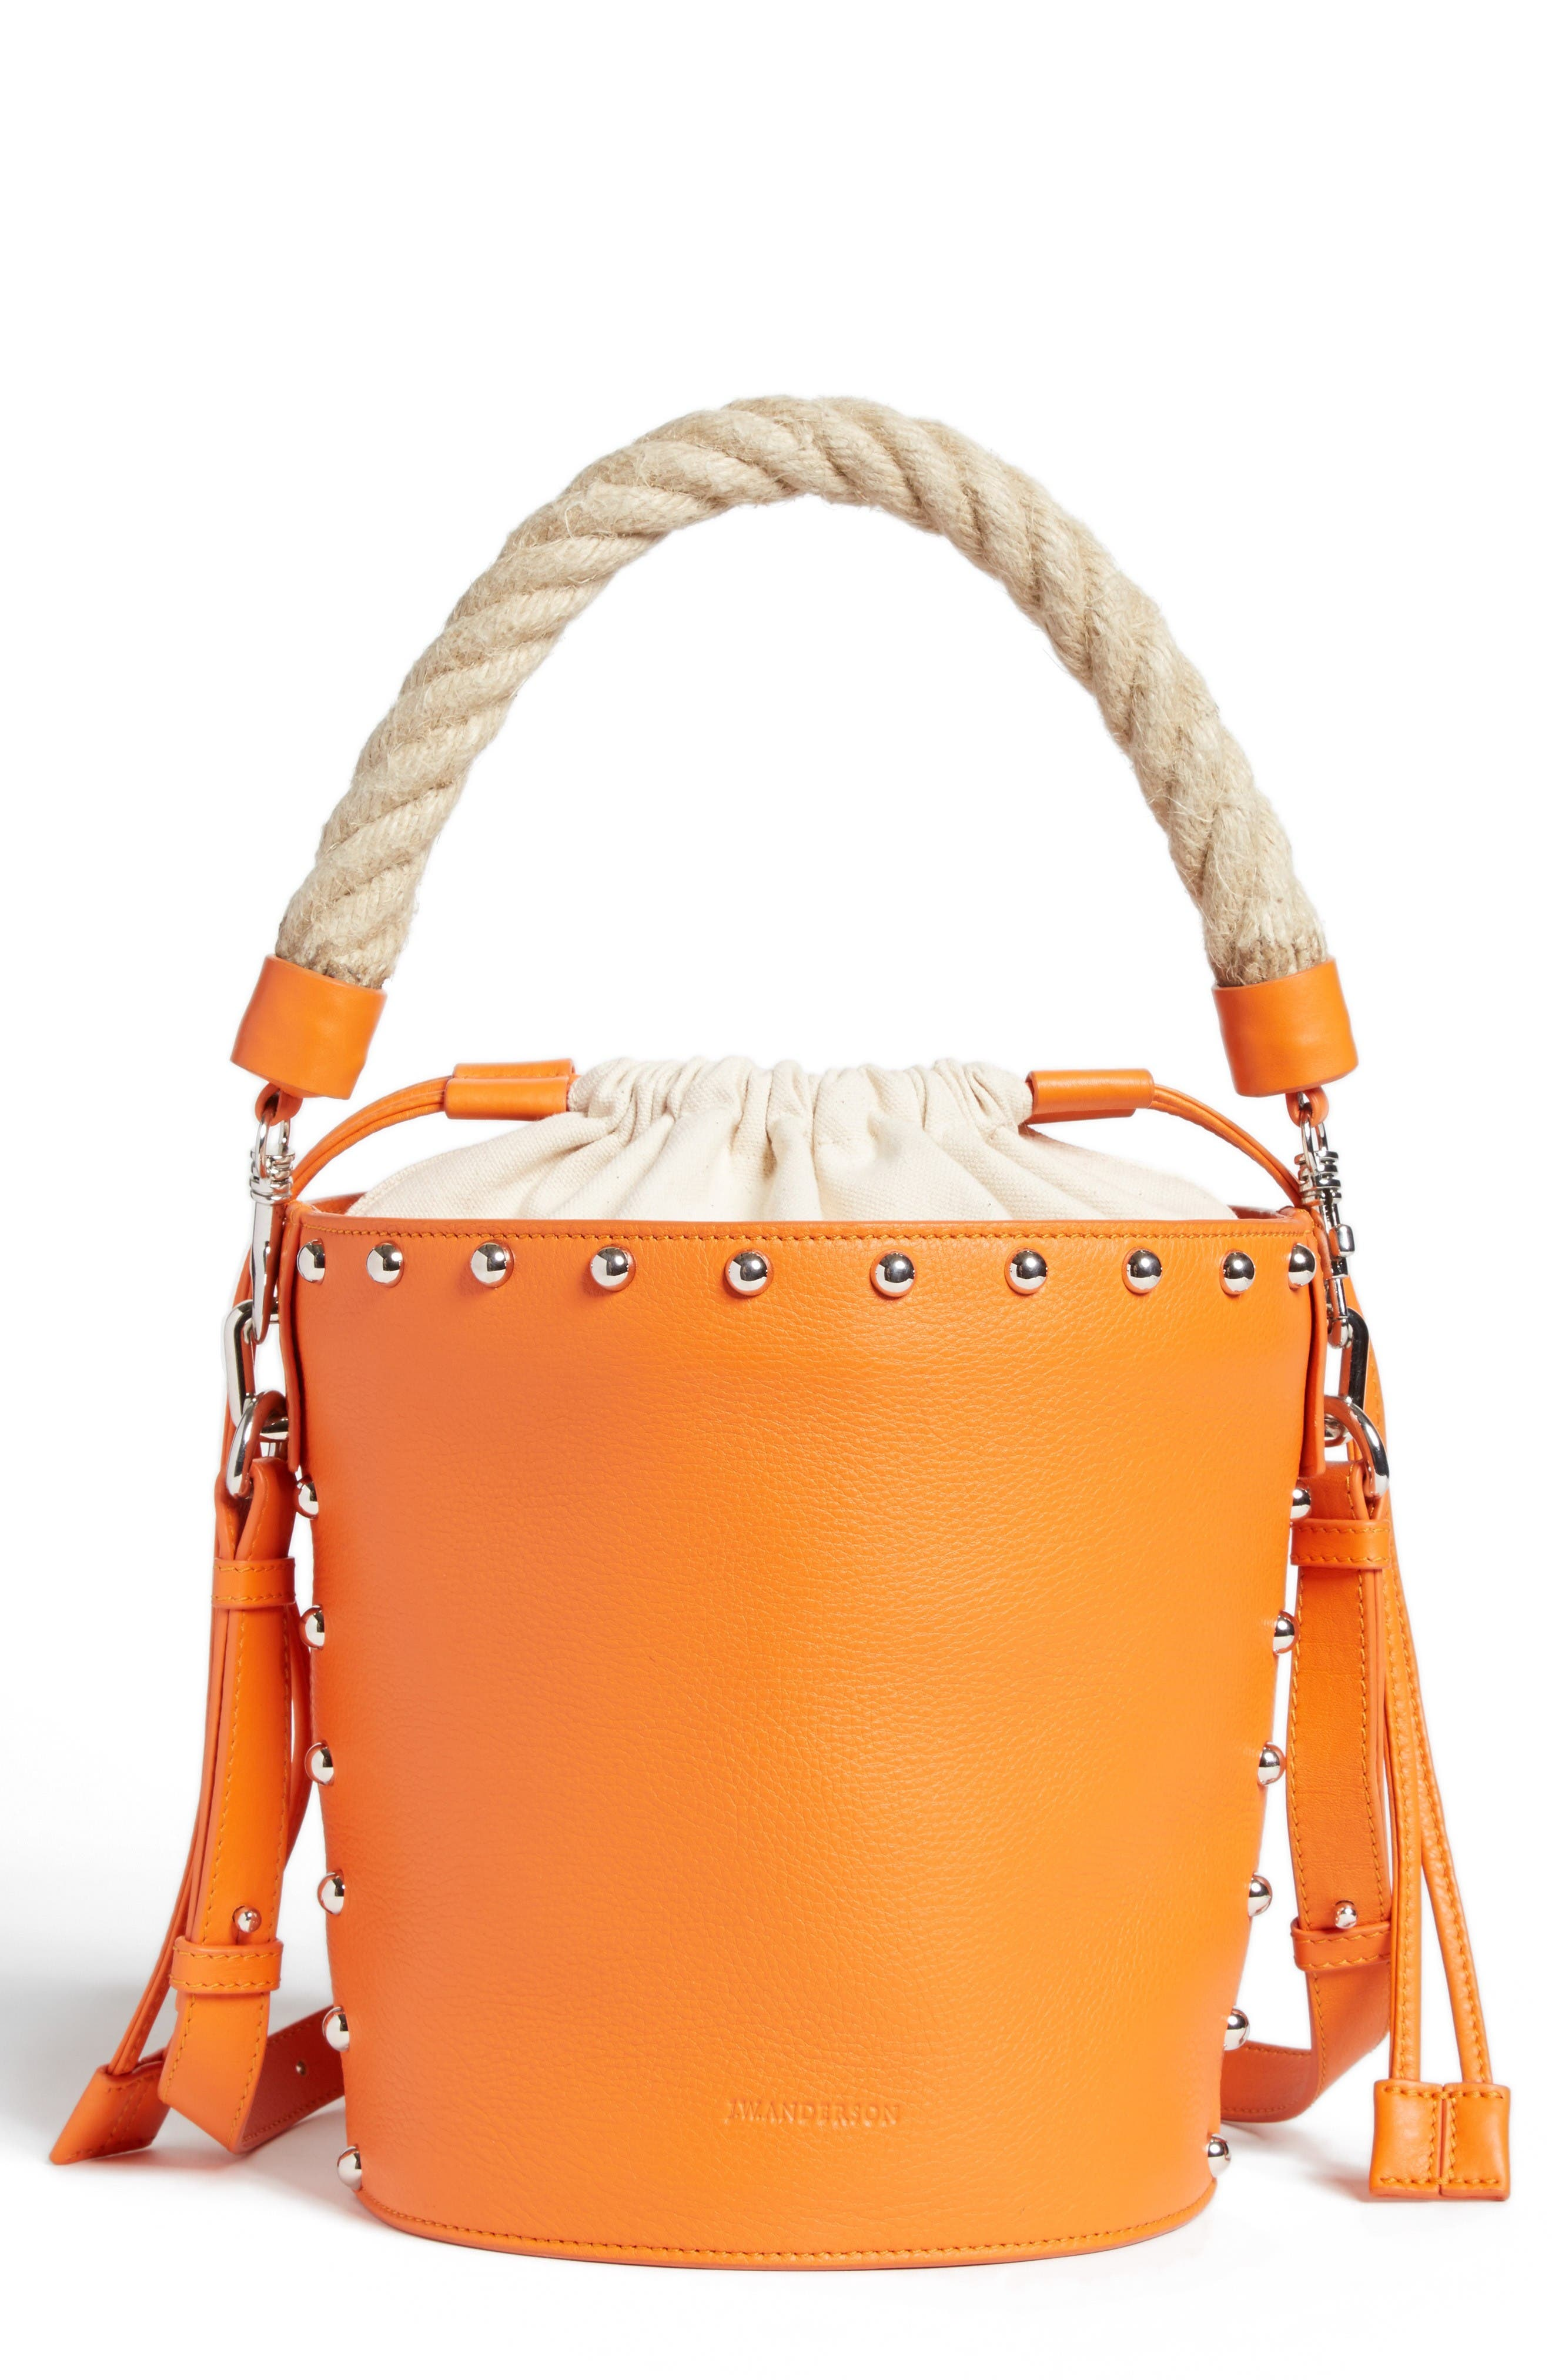 Alternate Image 1 Selected - J.W.ANDERSON Studded Bucket Bag